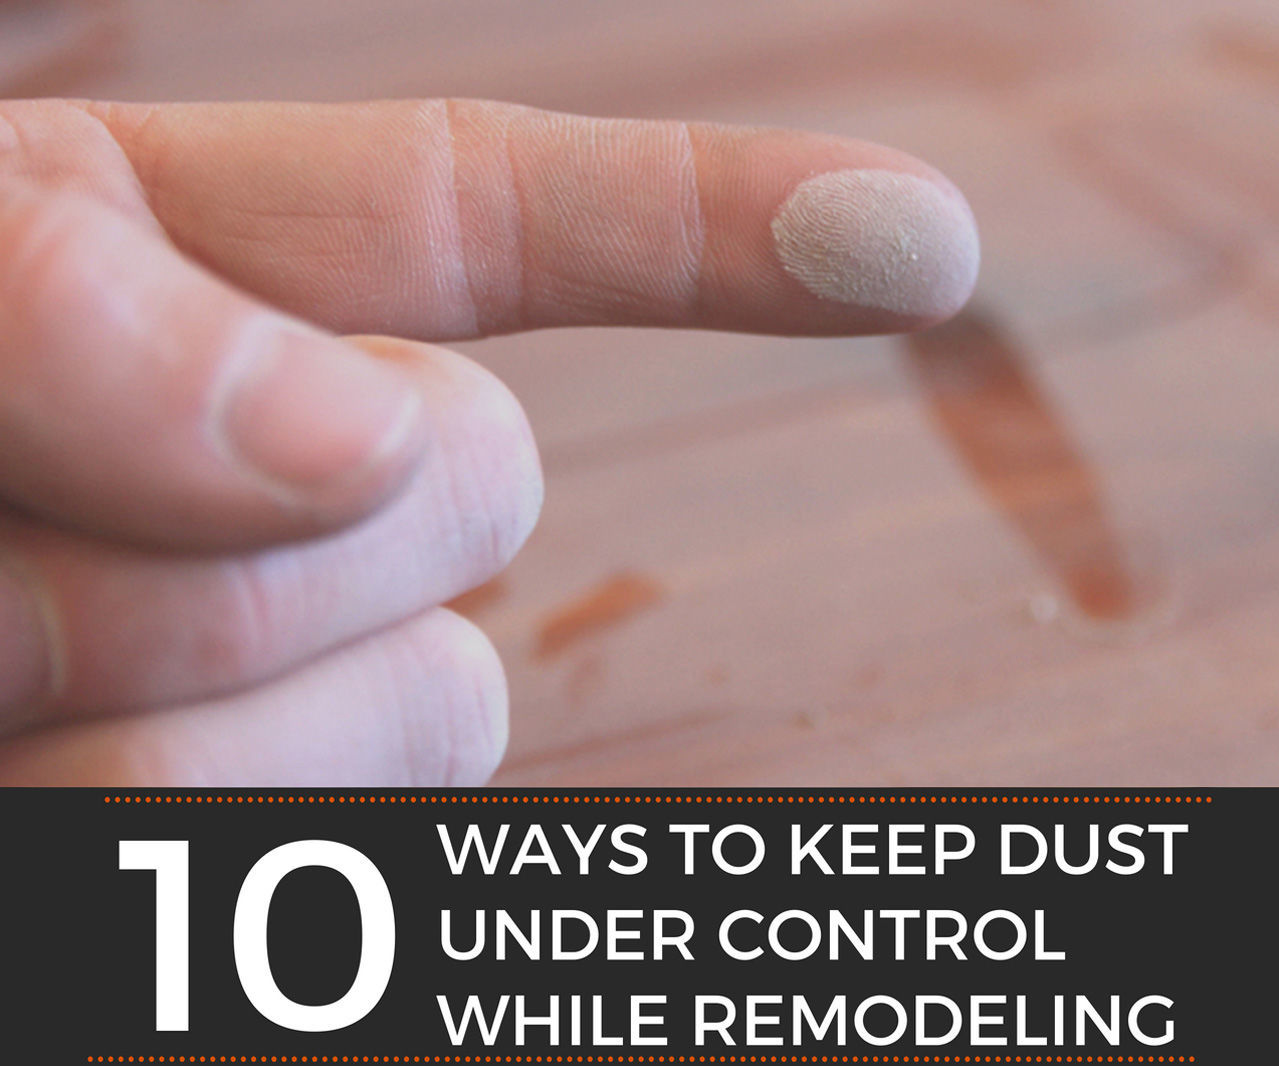 10 Ways to Keep Dust Under Control While Remodeling